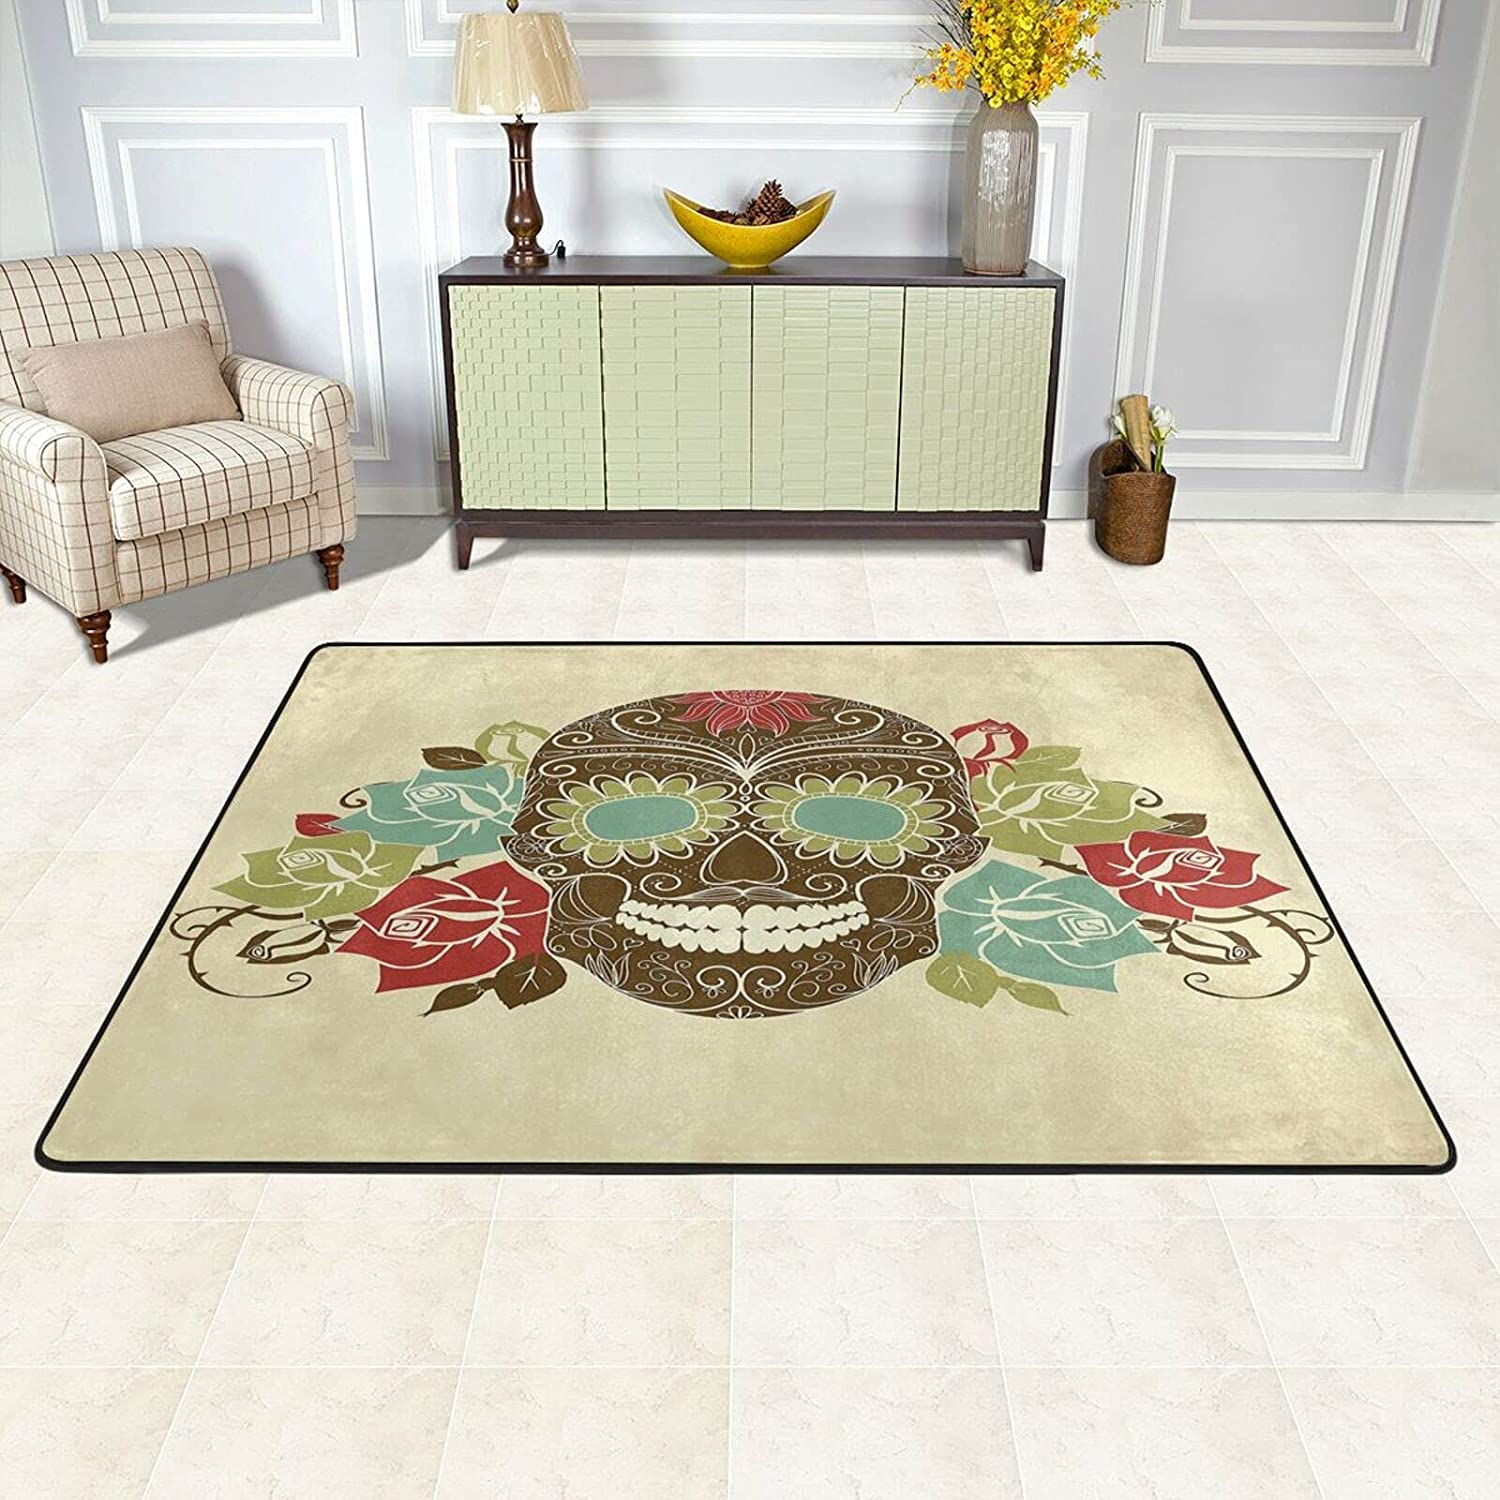 New sales TPOKIM Max 77% OFF Area Rugs Pad for Bedroom Ros Room Skull Living Sugar and